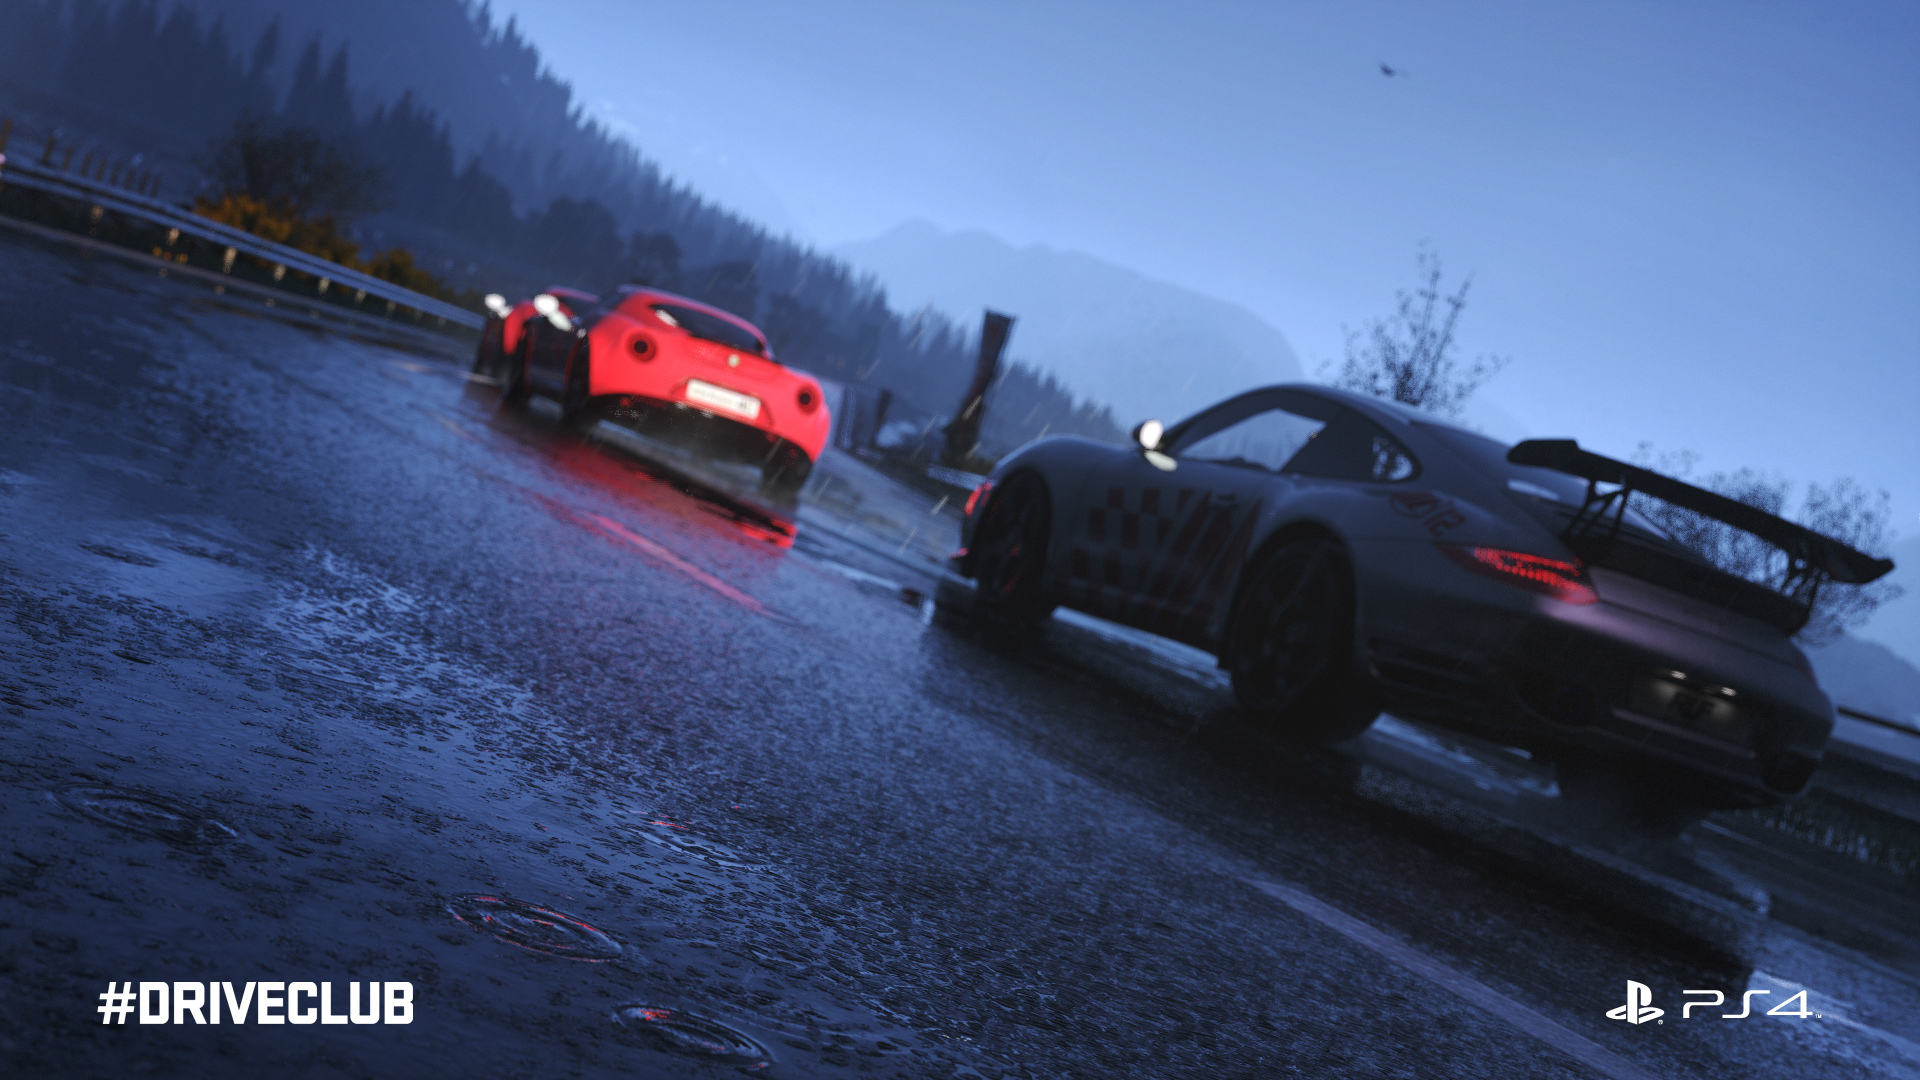 driveclub_ps4_psc-1